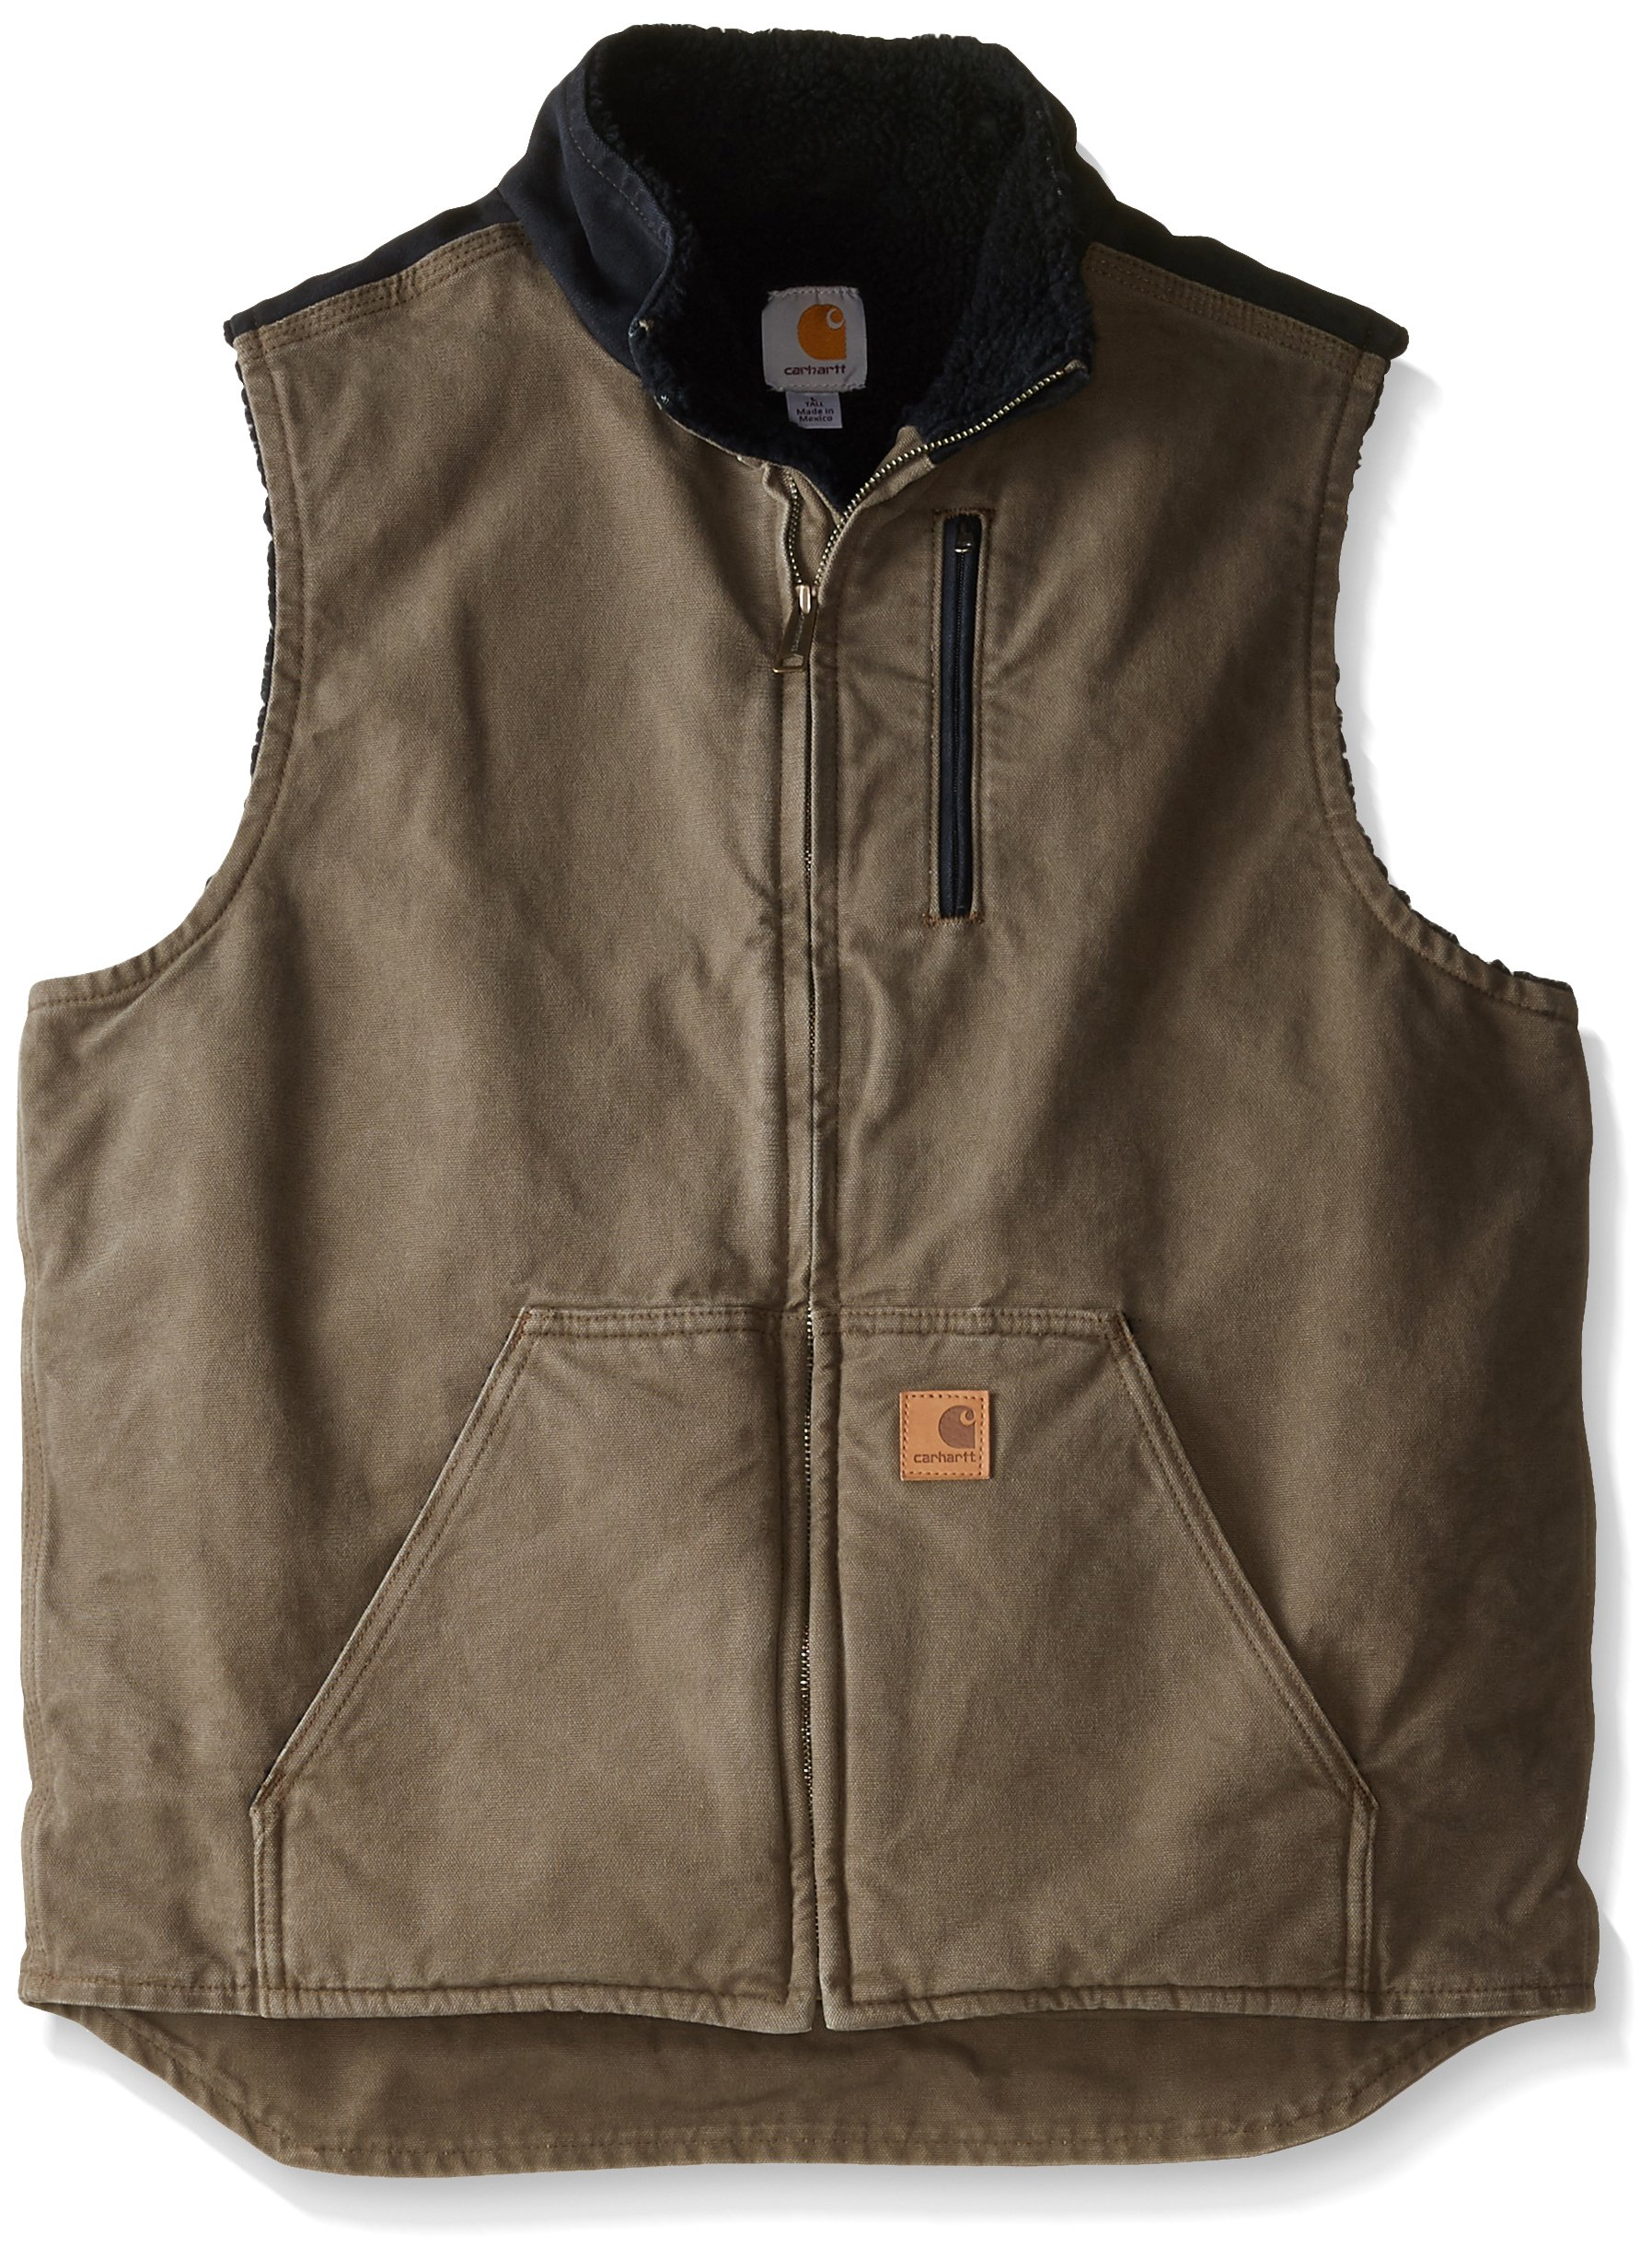 Carhartt Men's Big & Tall Sherpa Lined Sandstone Mock Neck Vest V33,Light Brown/Black,3X-Large